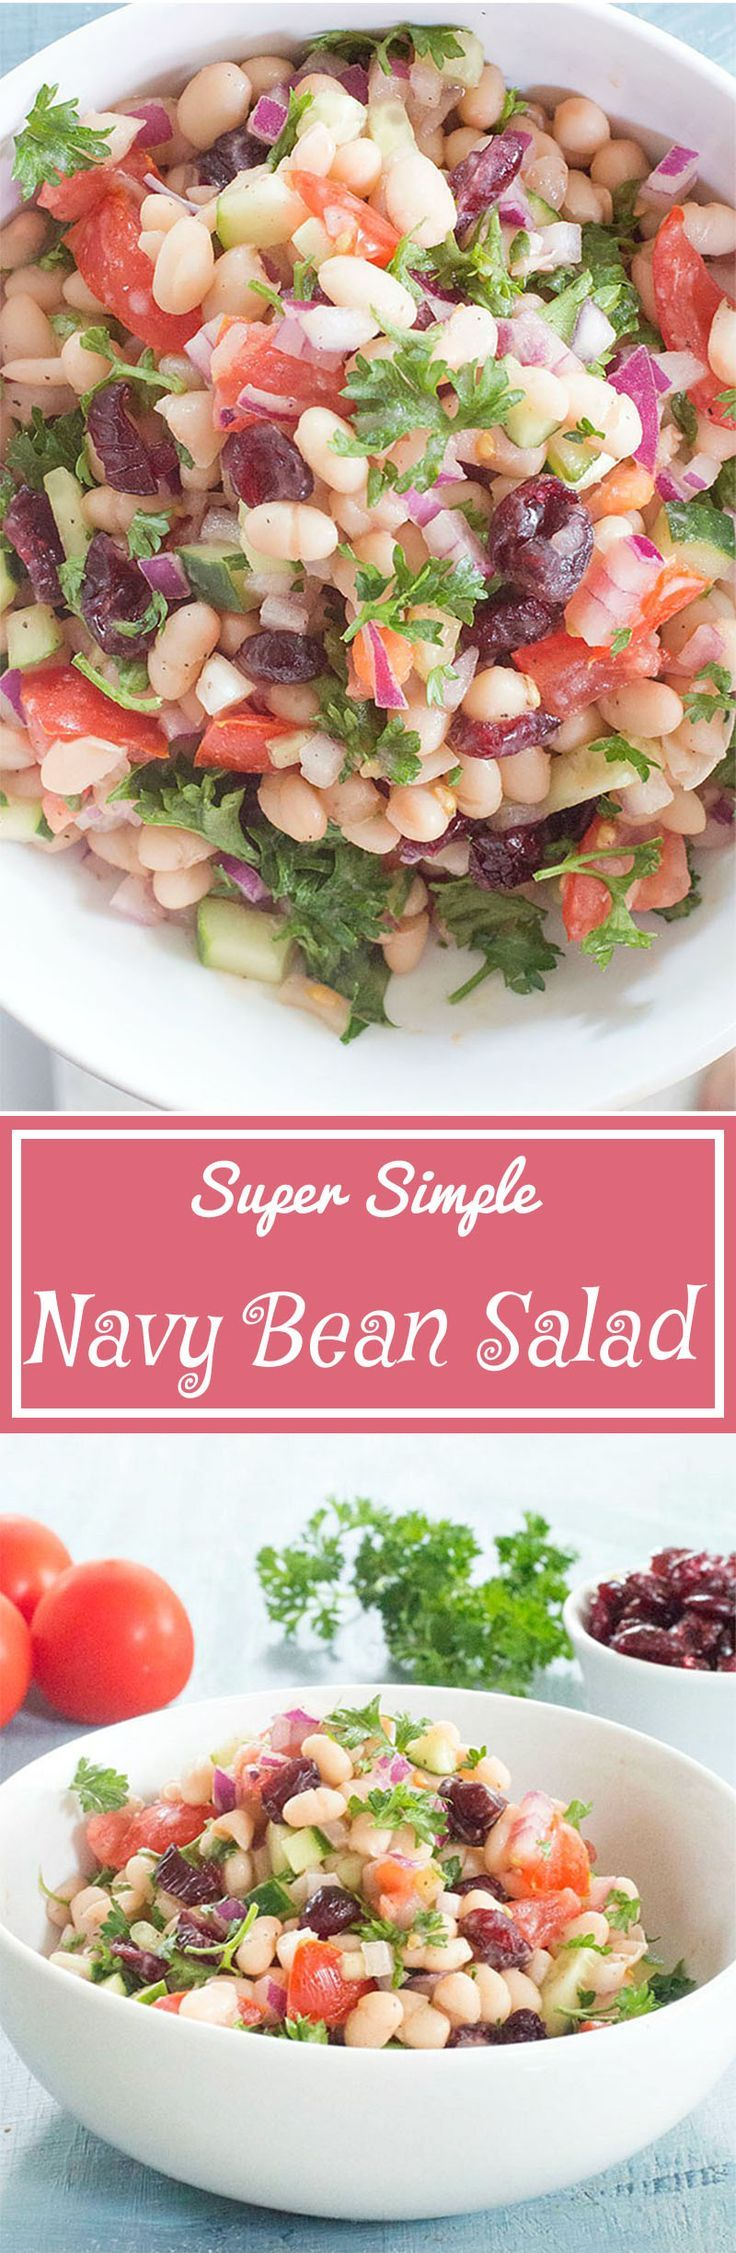 Looking for salad recipes that also counts as vegan recipes? Navy Beans Salad is very healthy, quick salad idea. Made with Parsley & all healthy ingredients | Meatless Side Dishes Holiday recipes Bean Recipes Picnic Recipes Salad recipes Vegetarian recipes Vegan Recipes Comfort Food Lunch recipes